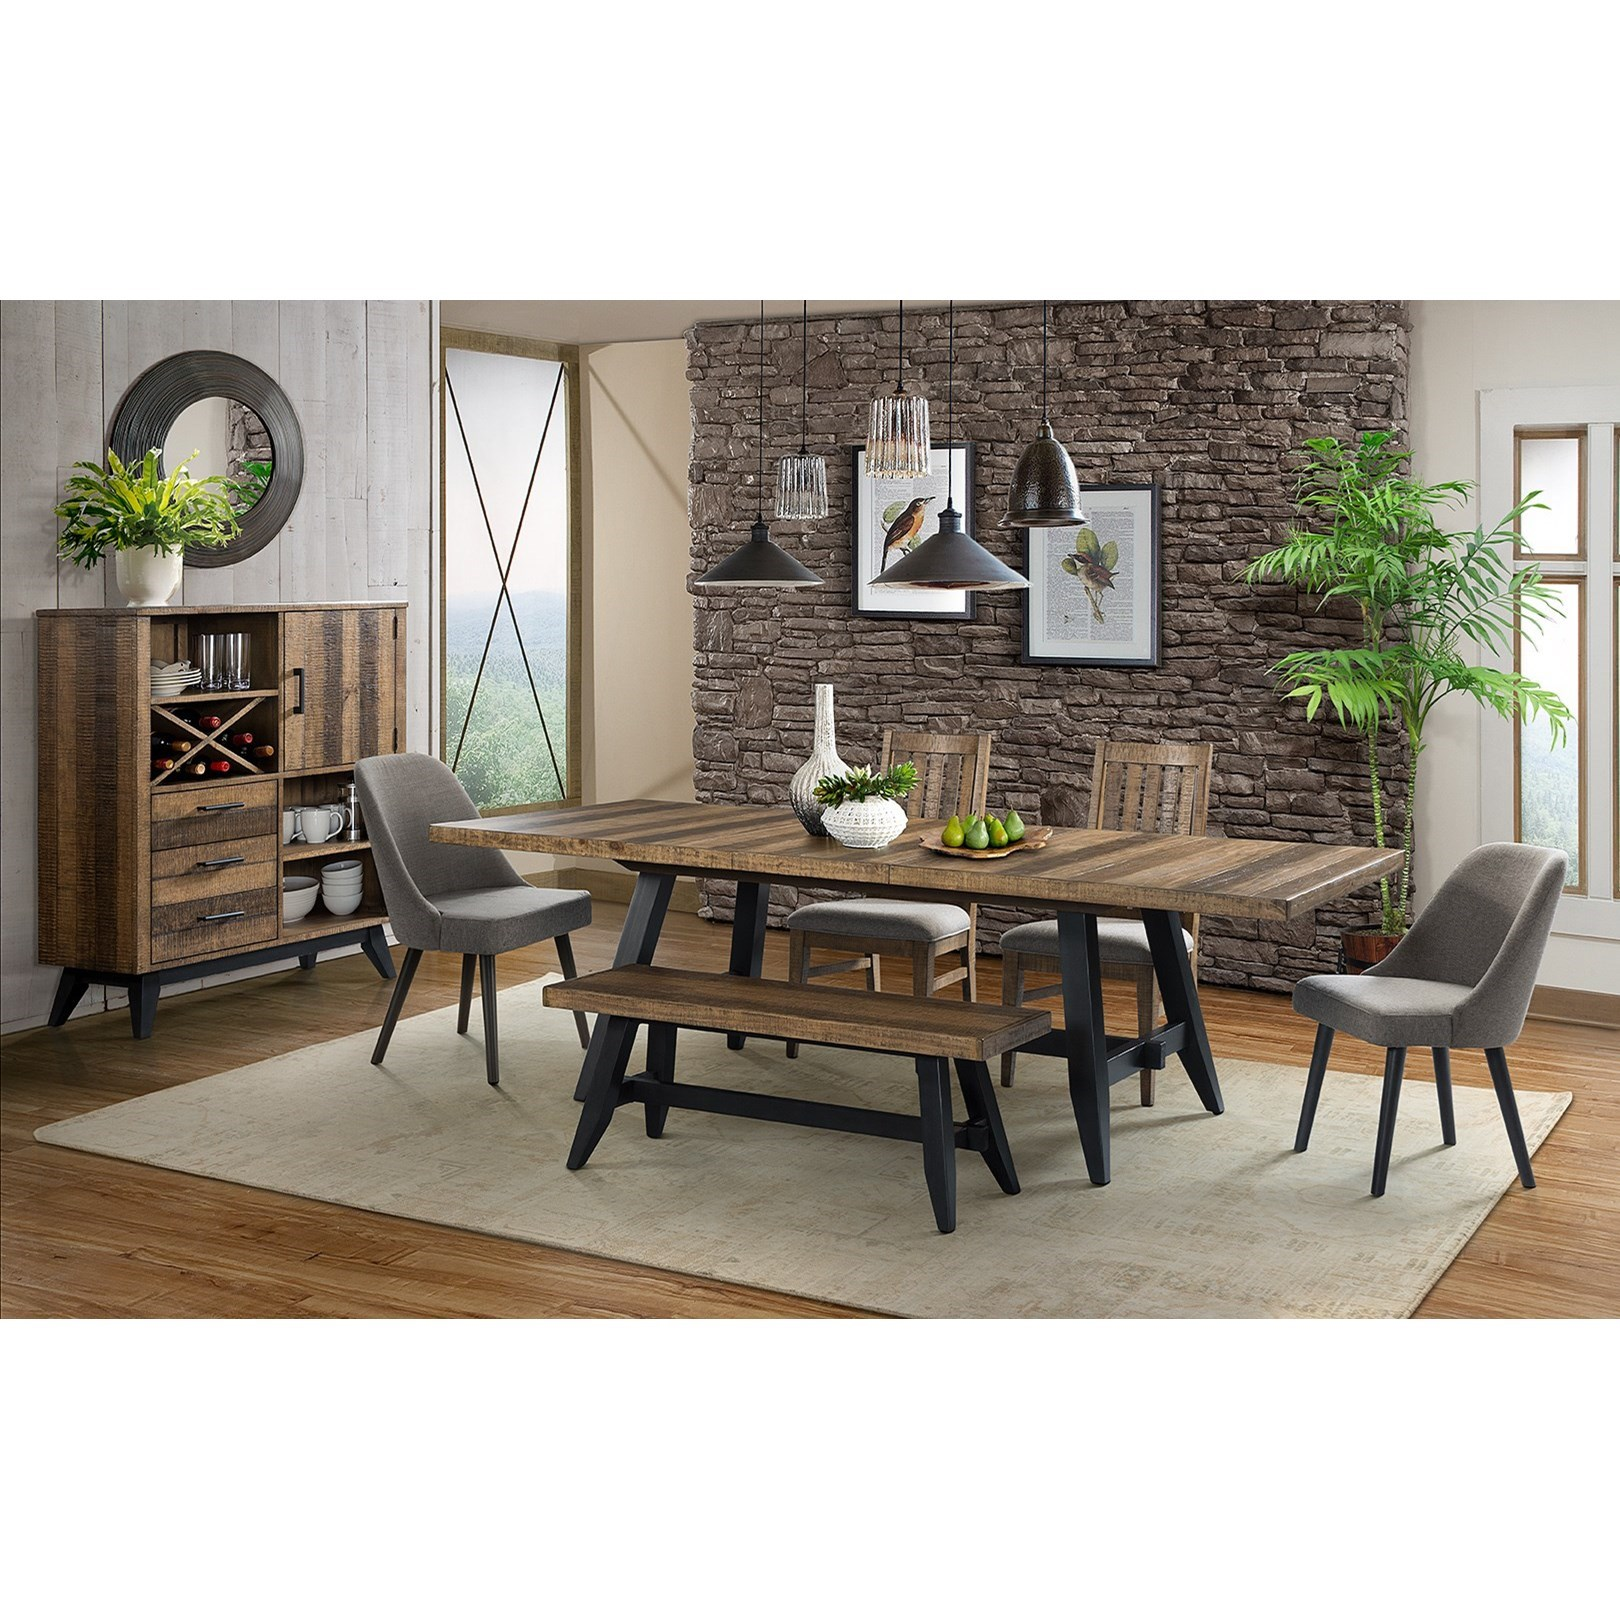 Informal Dining Room: VFM Signature Urban Rustic Casual Dining Room Group